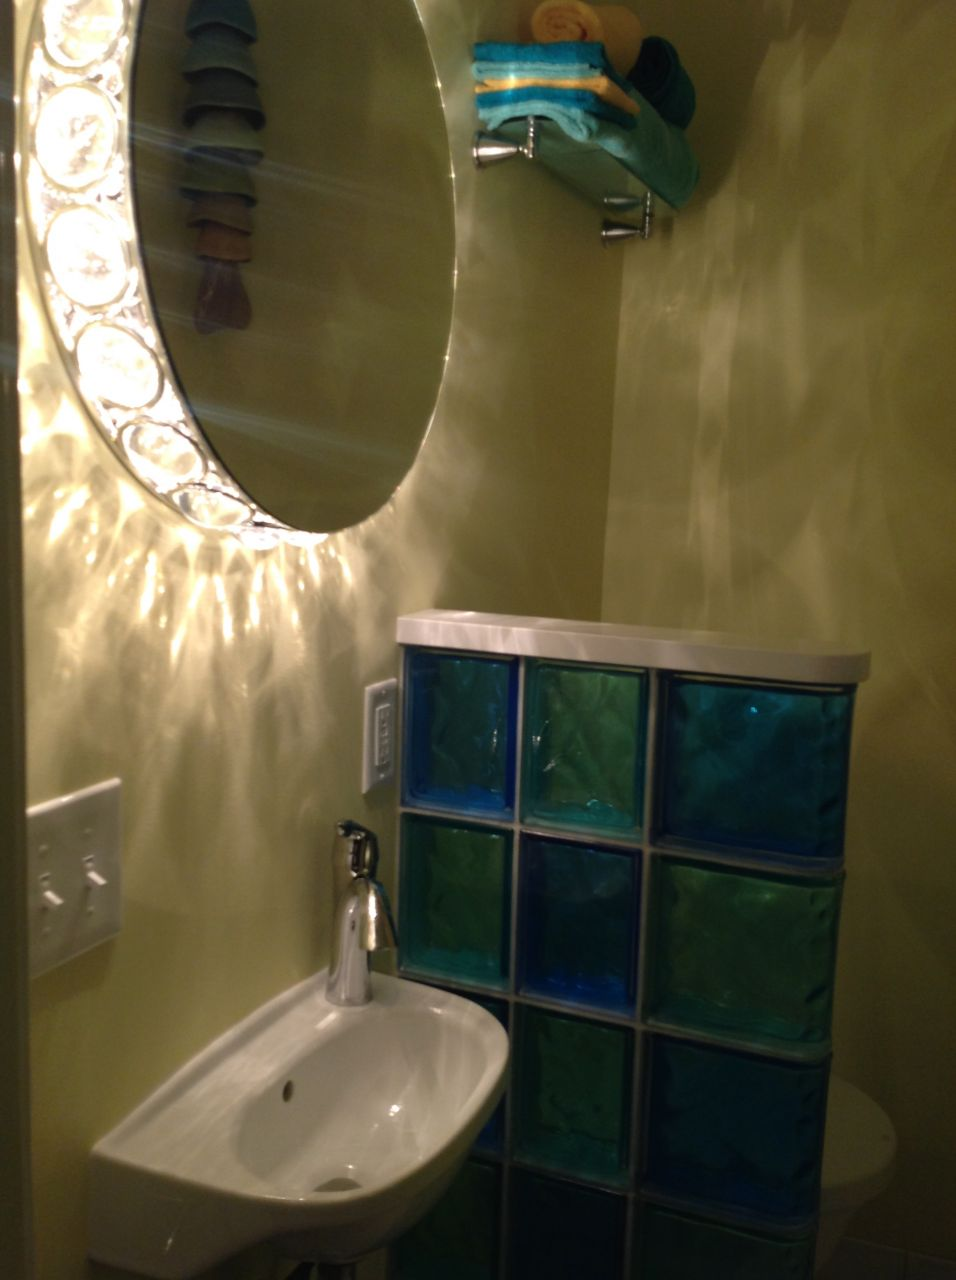 Small bathroom innovate building solutions blog for Bathroom closet remodel